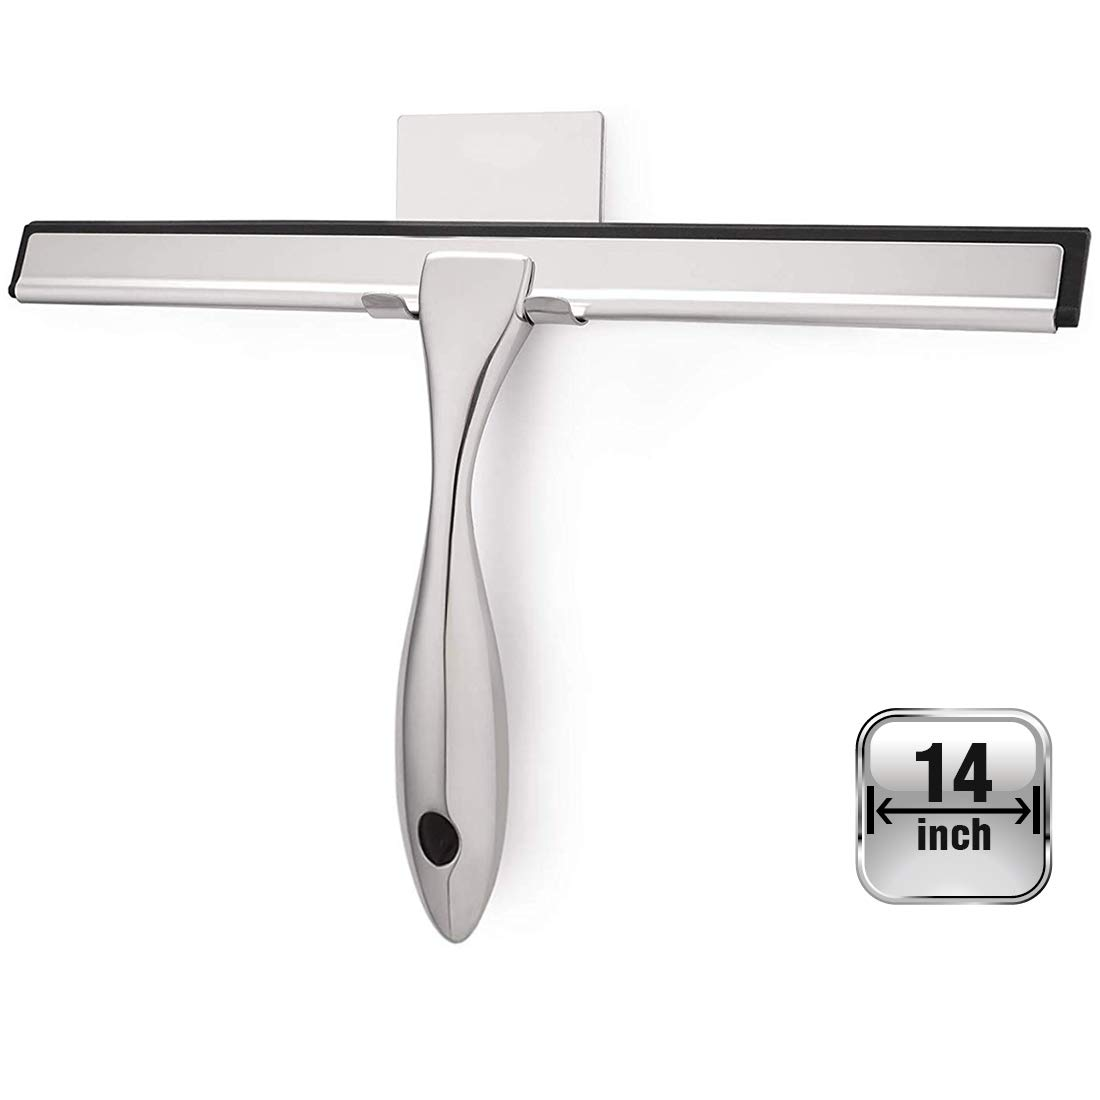 OPERNEE All Purpose Squeegee Stainless Bathroom